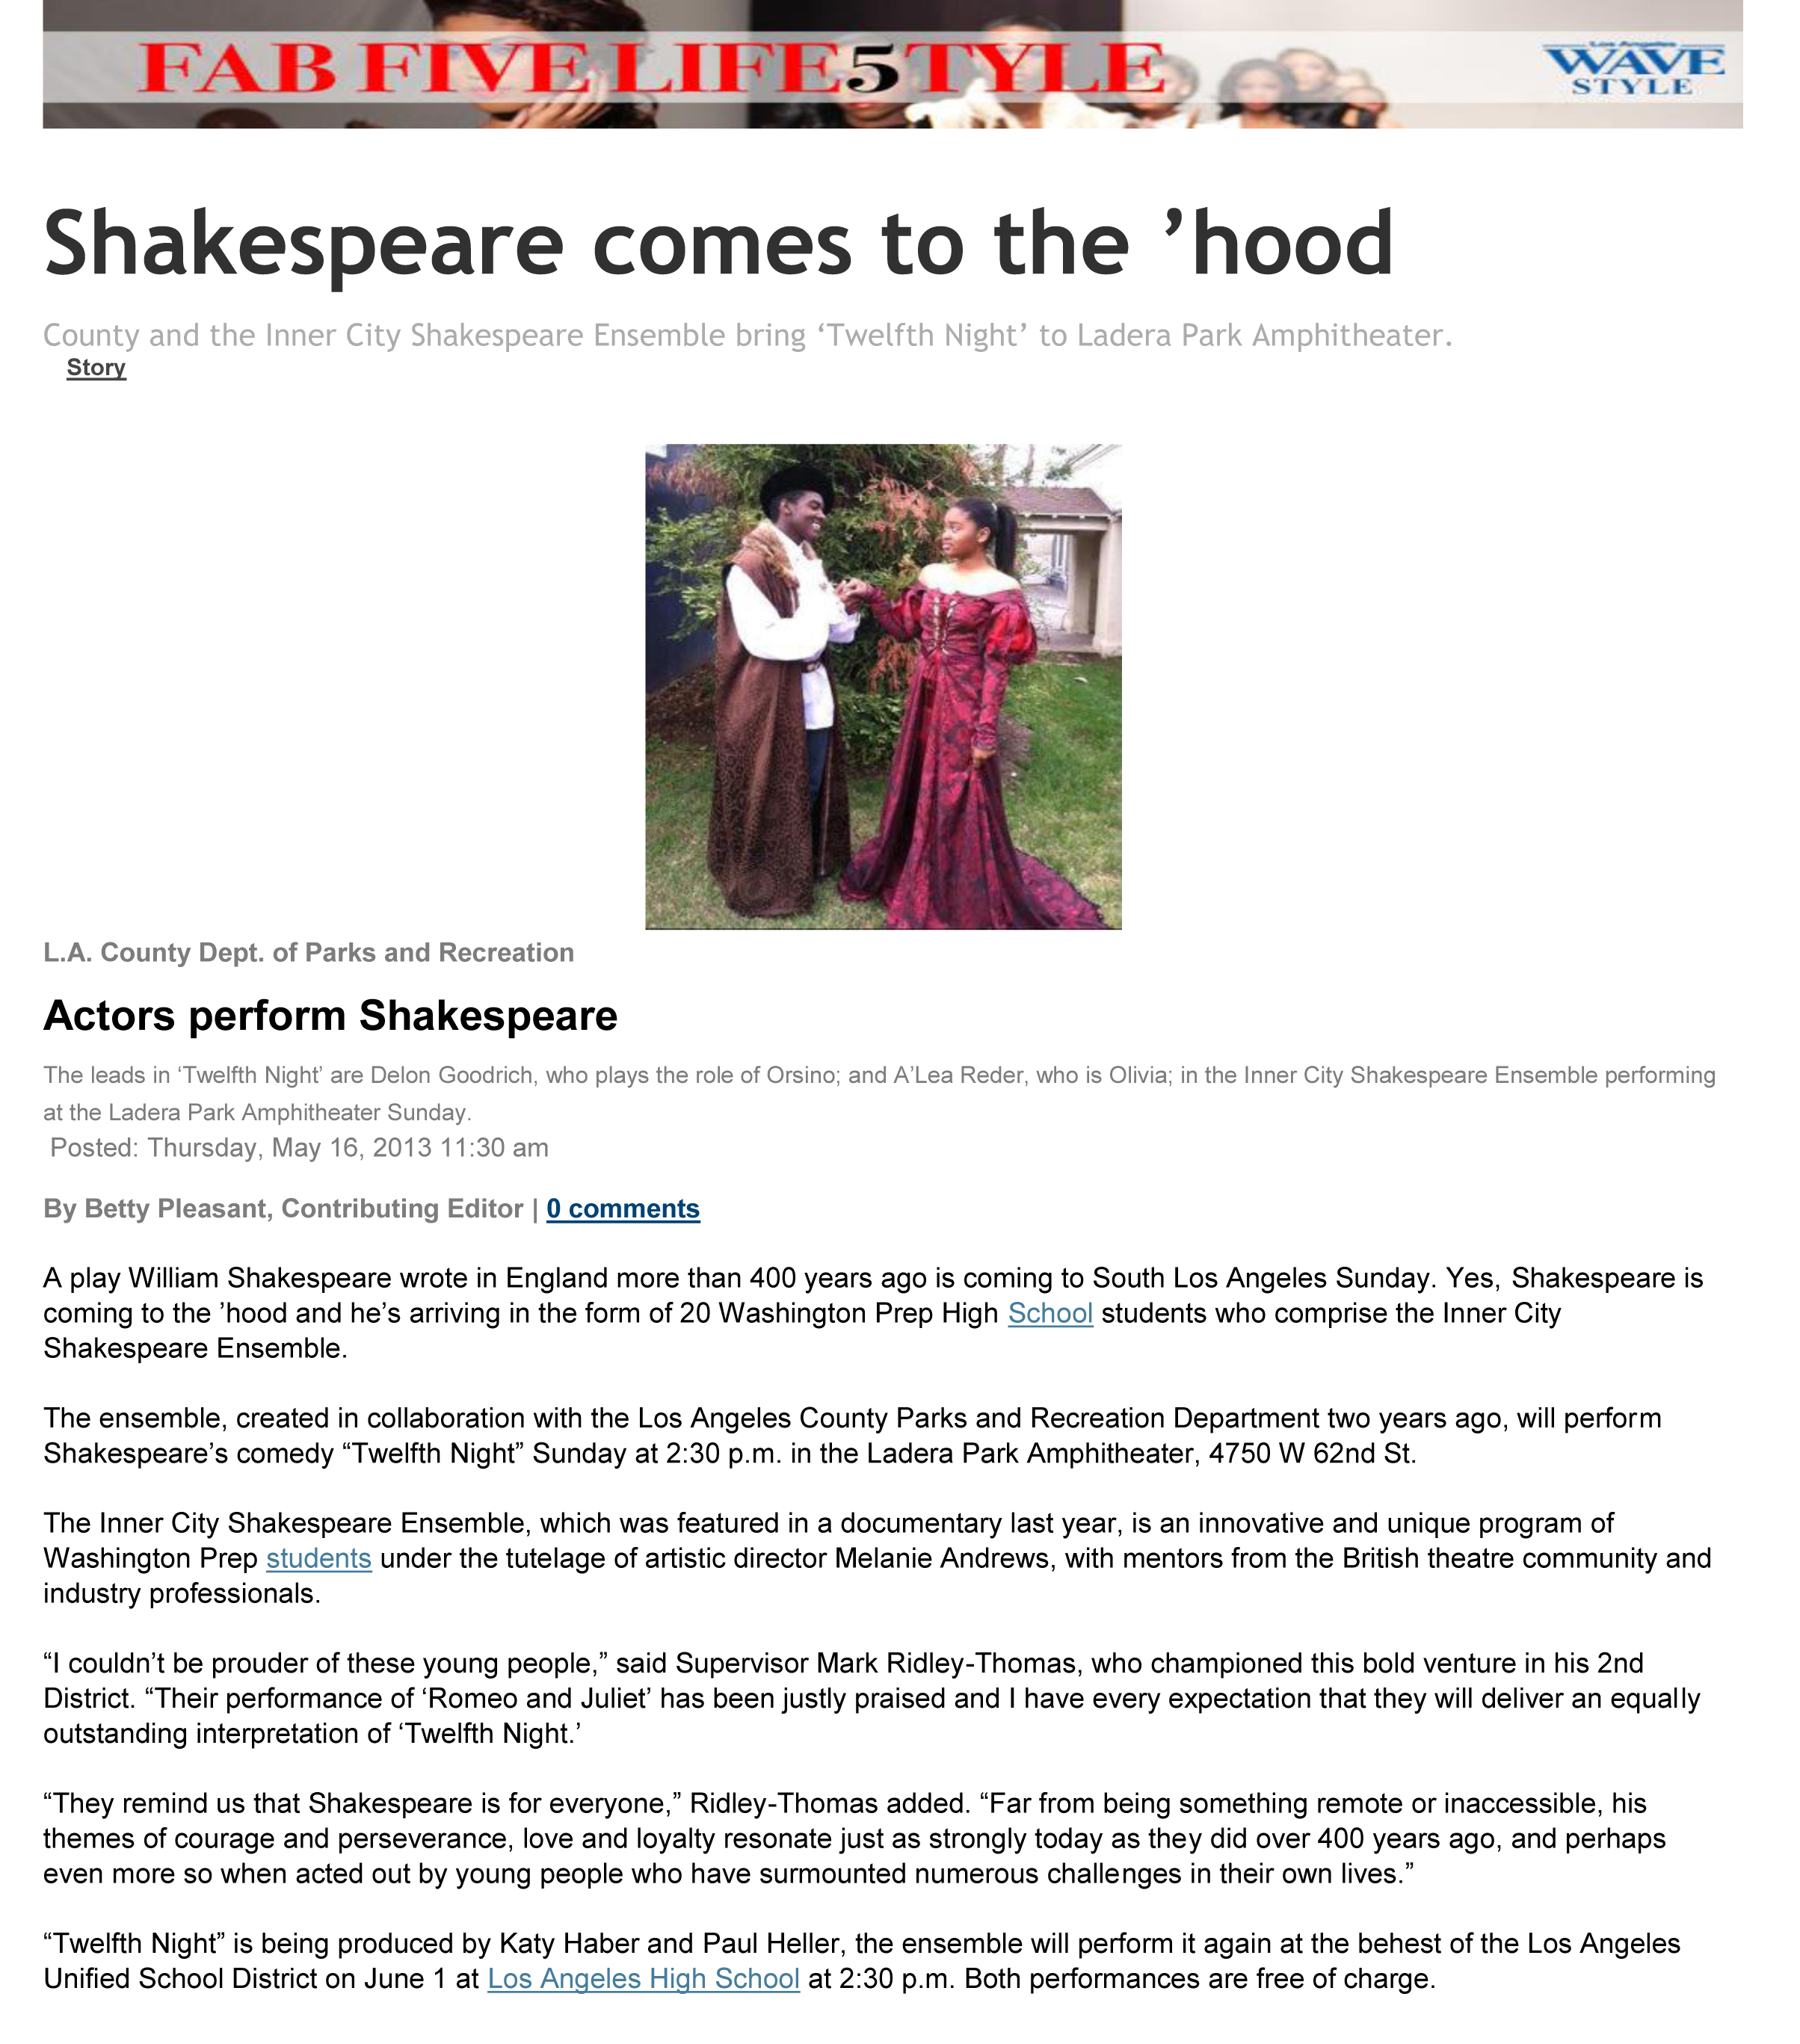 the_wave_shakespearecomestothehood